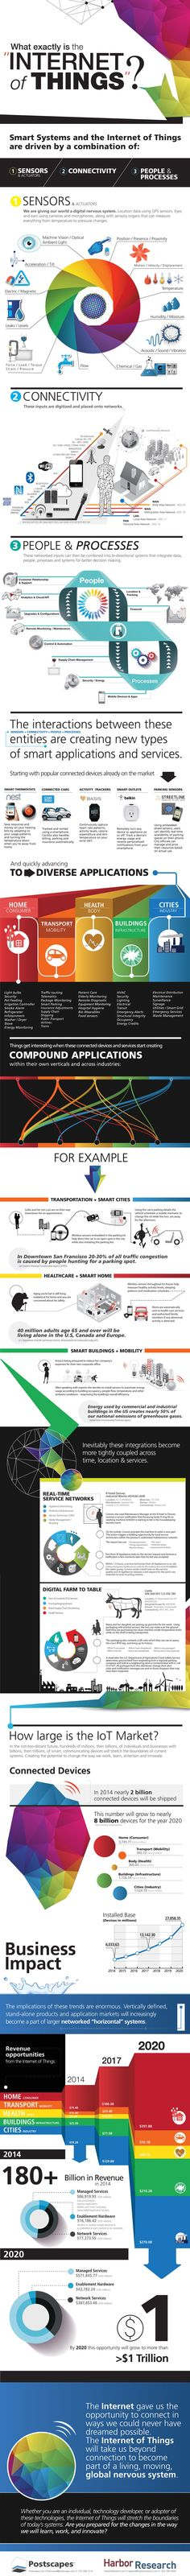 What Exactly Is The Internet of Things? #infographic #IOT #Technology